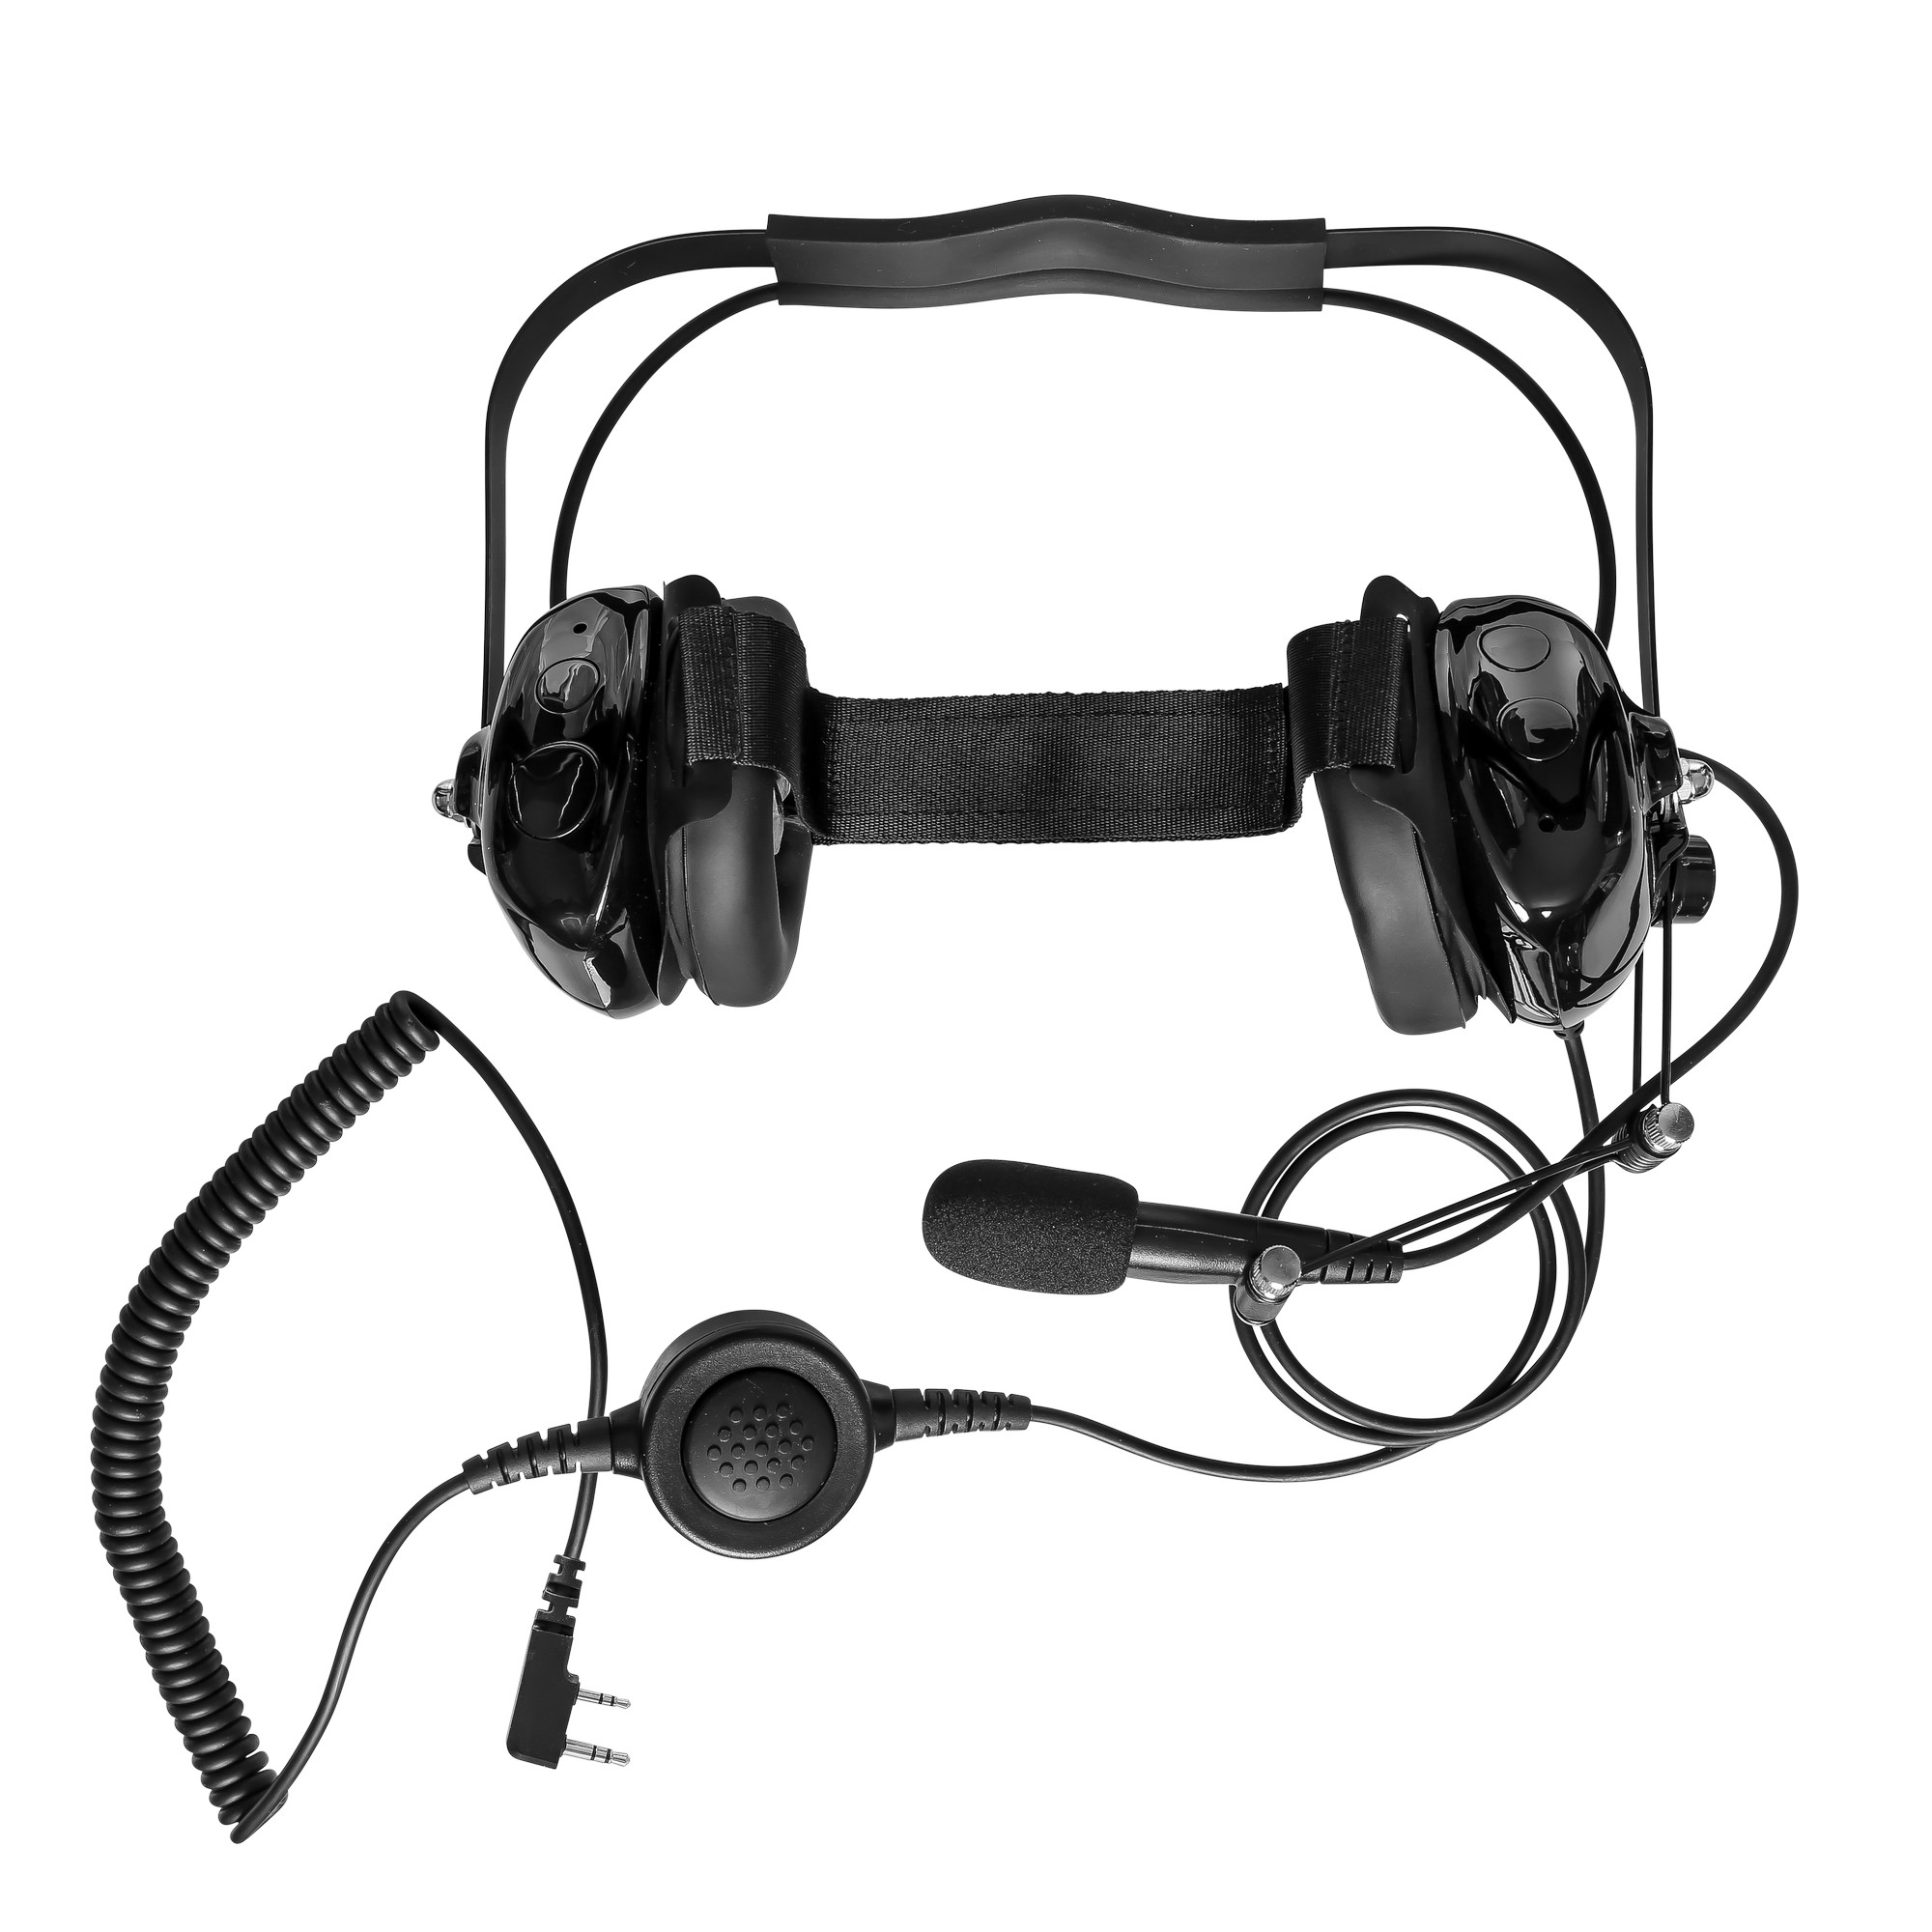 Maxtop AHDH0032-BK-K2 Two Way Radio Noise Cancelling Headset for Kenwood TK-3230